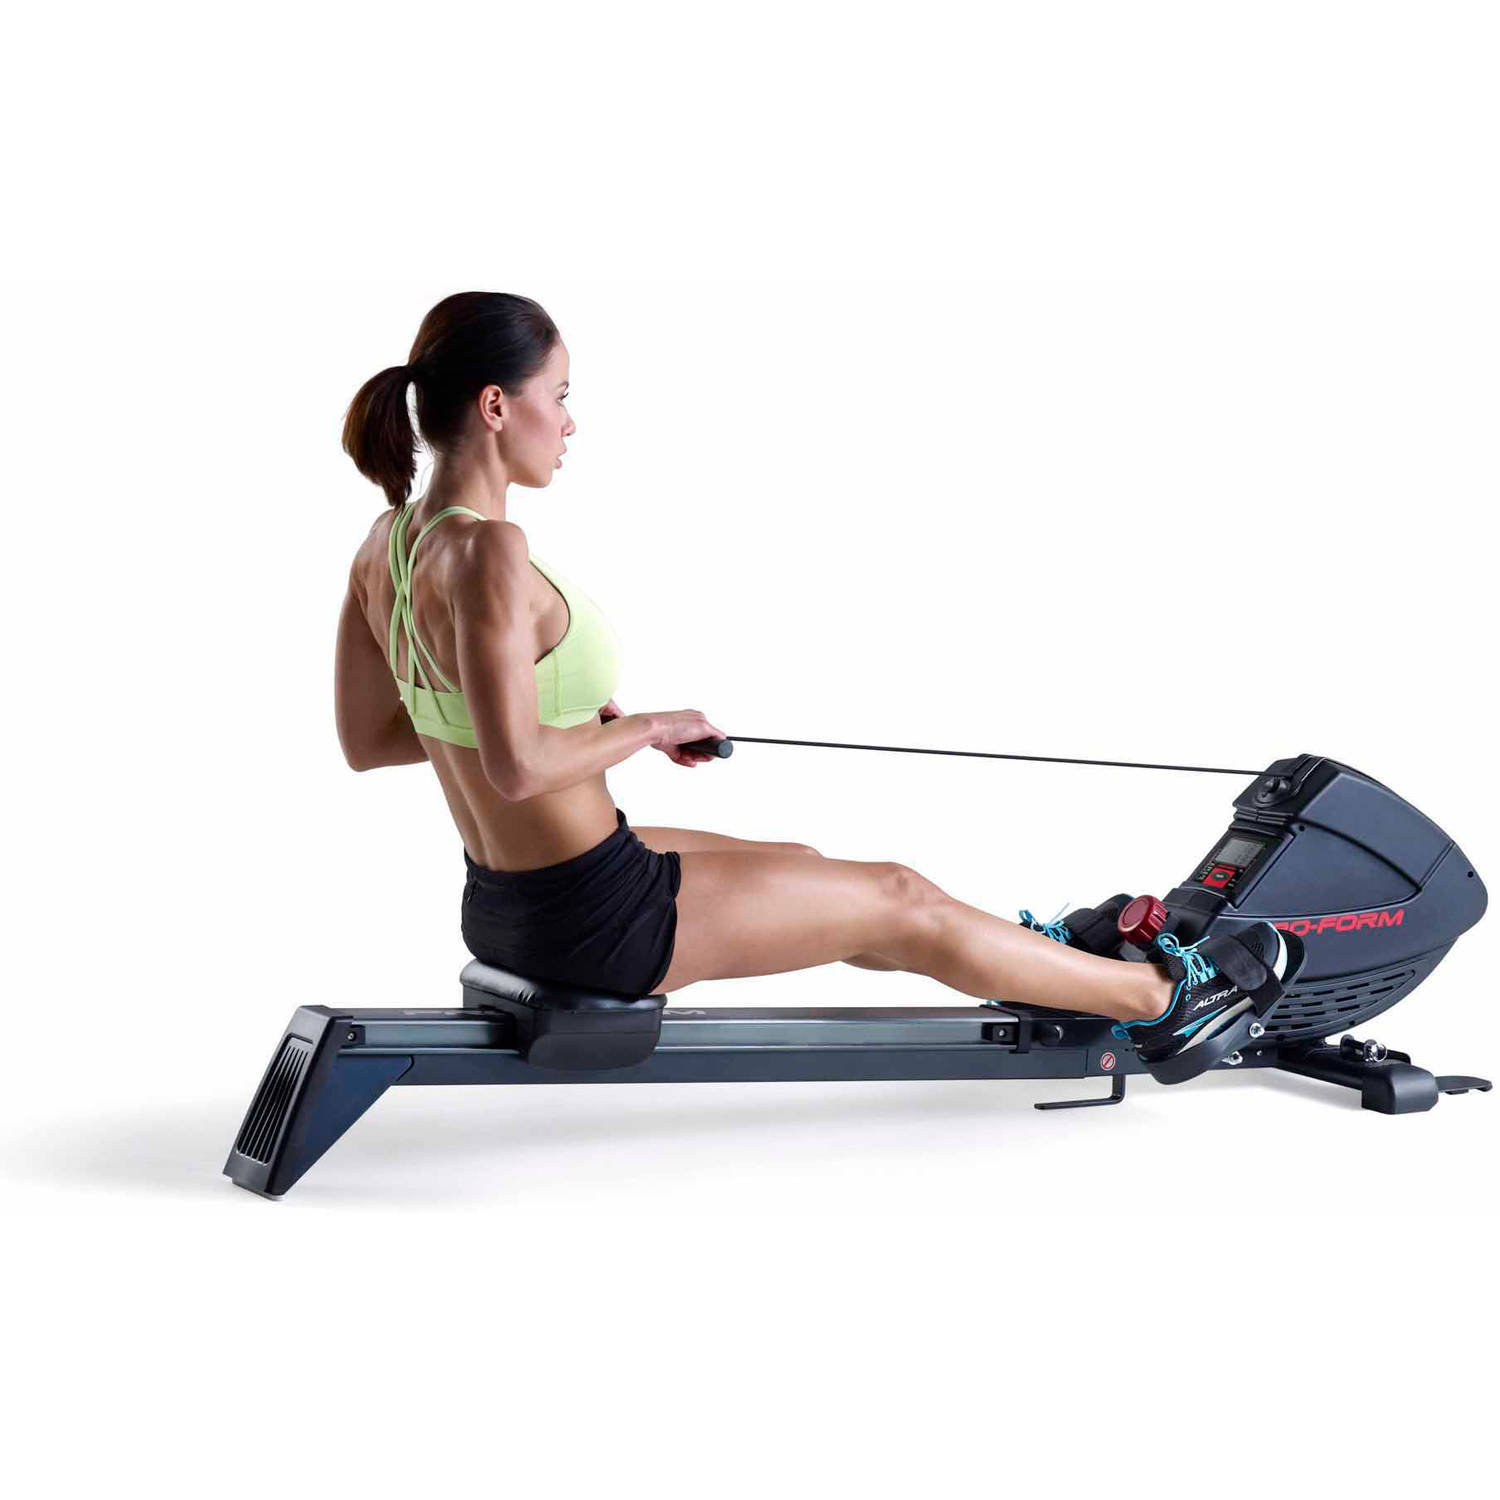 Folding Rower Fitness Workout Equipment Cardio Exercise Home Station